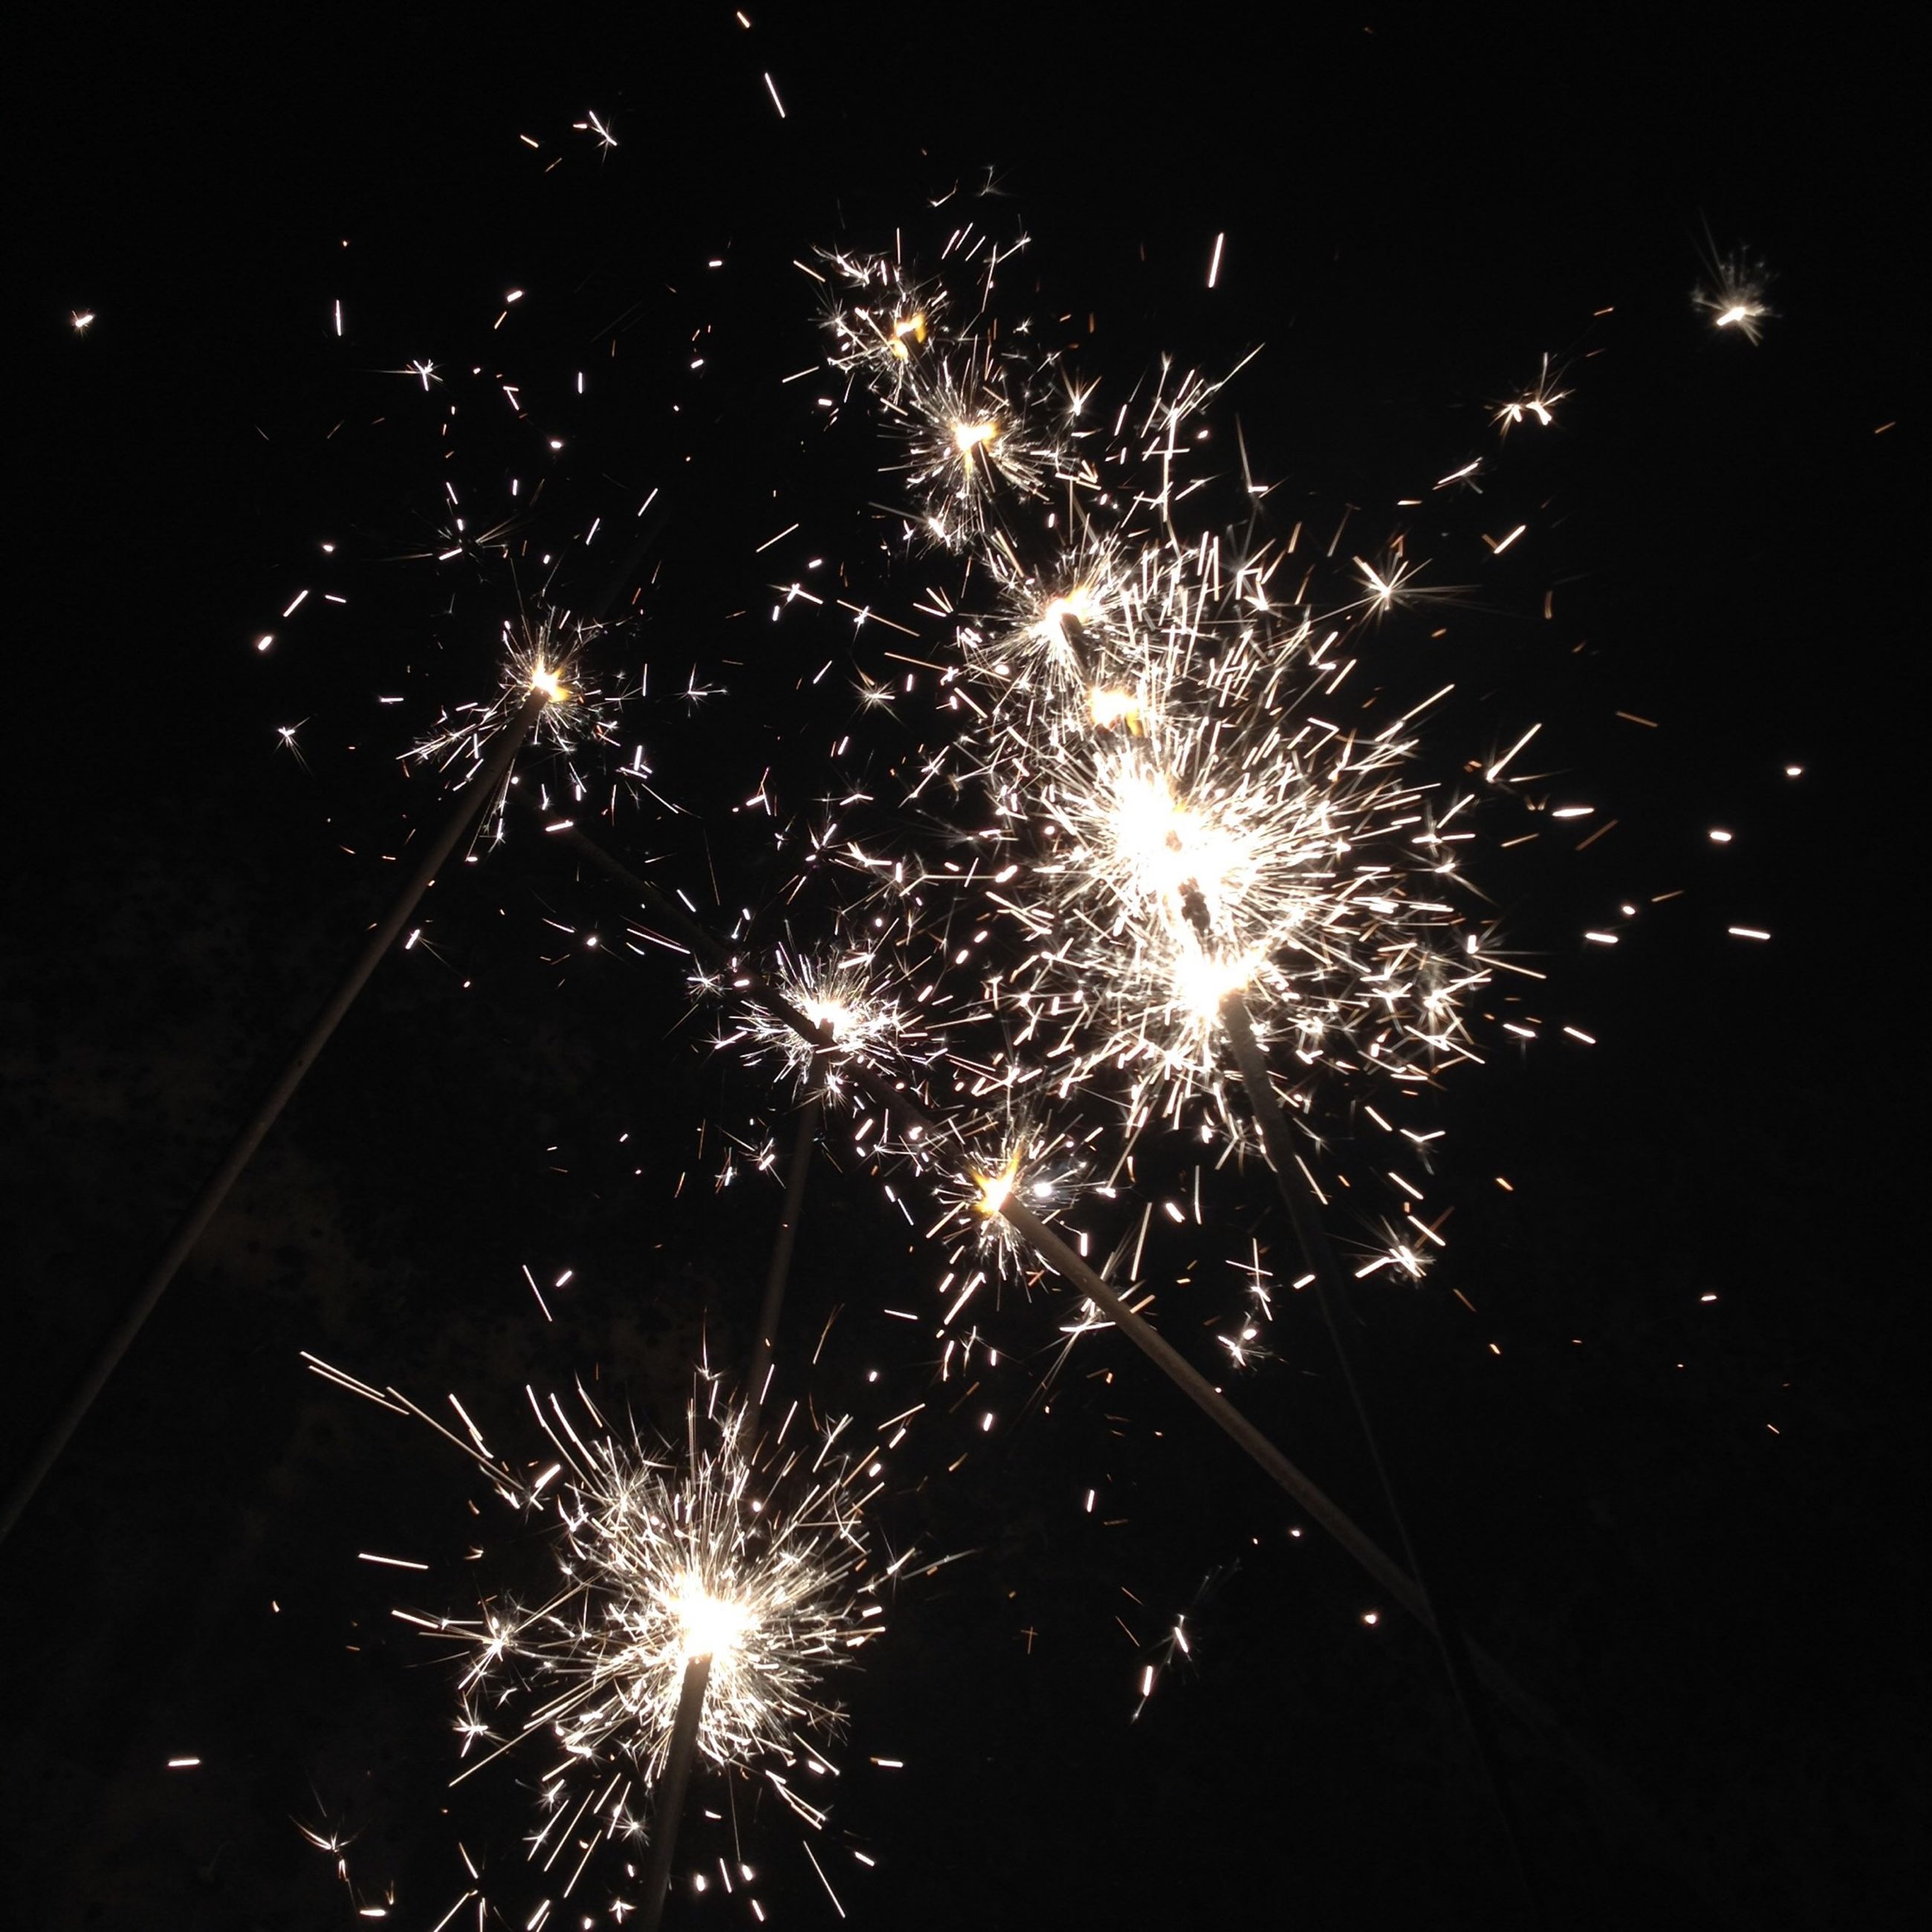 night, firework display, illuminated, celebration, exploding, arts culture and entertainment, long exposure, firework - man made object, event, sparks, low angle view, glowing, motion, firework, entertainment, fire - natural phenomenon, sky, blurred motion, celebration event, smoke - physical structure